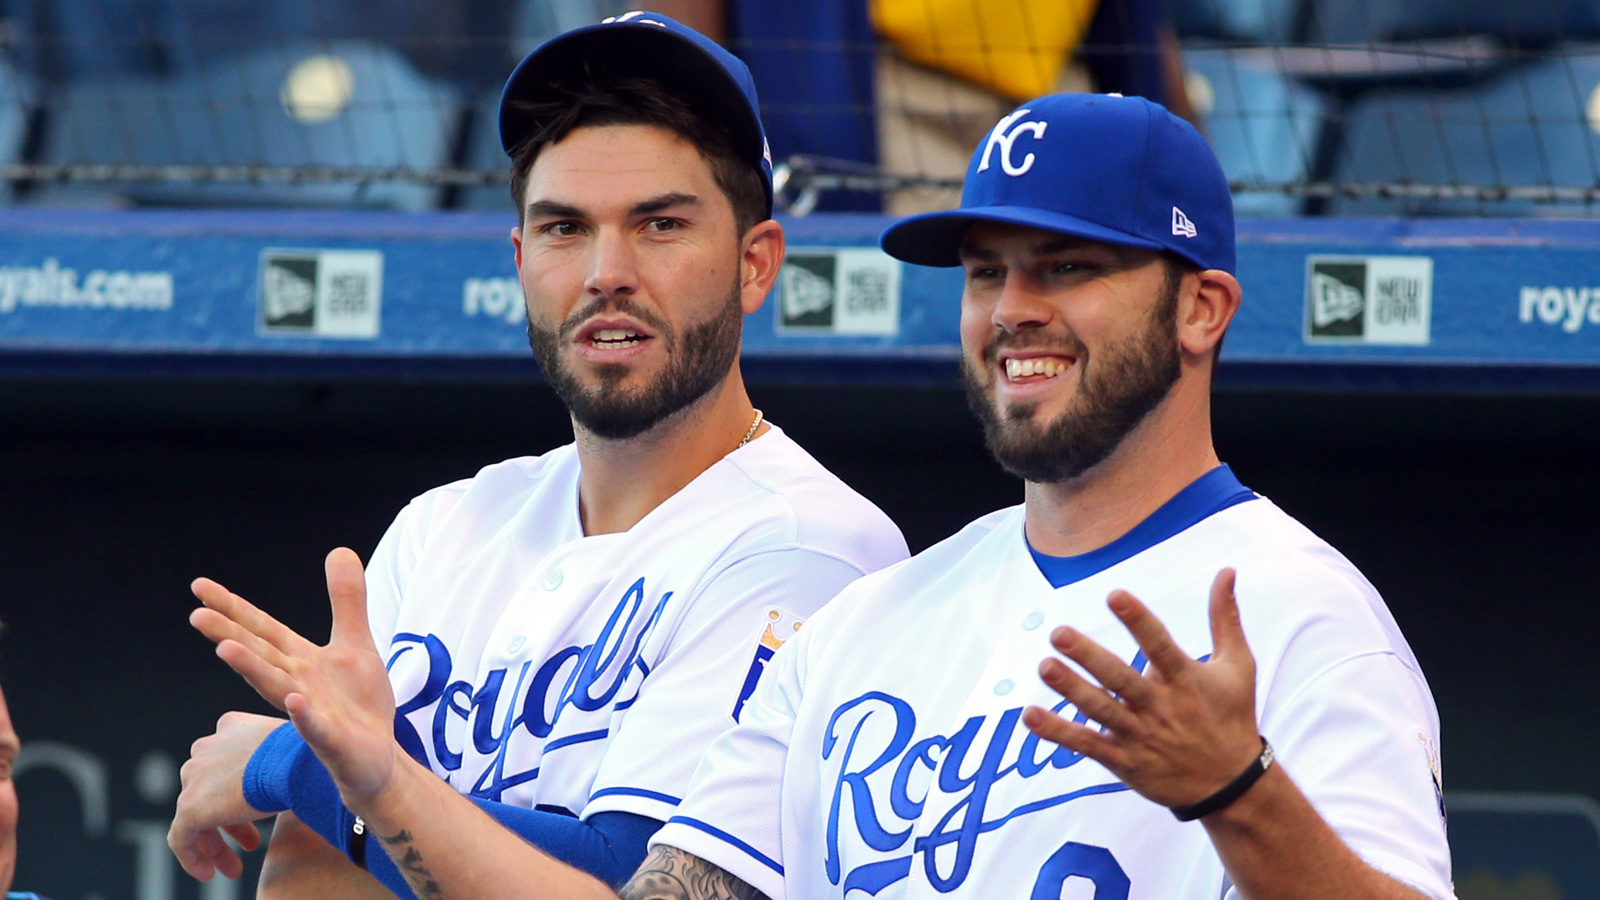 Moustakas on facing Hosmer: 'It's just weird seeing him over there'